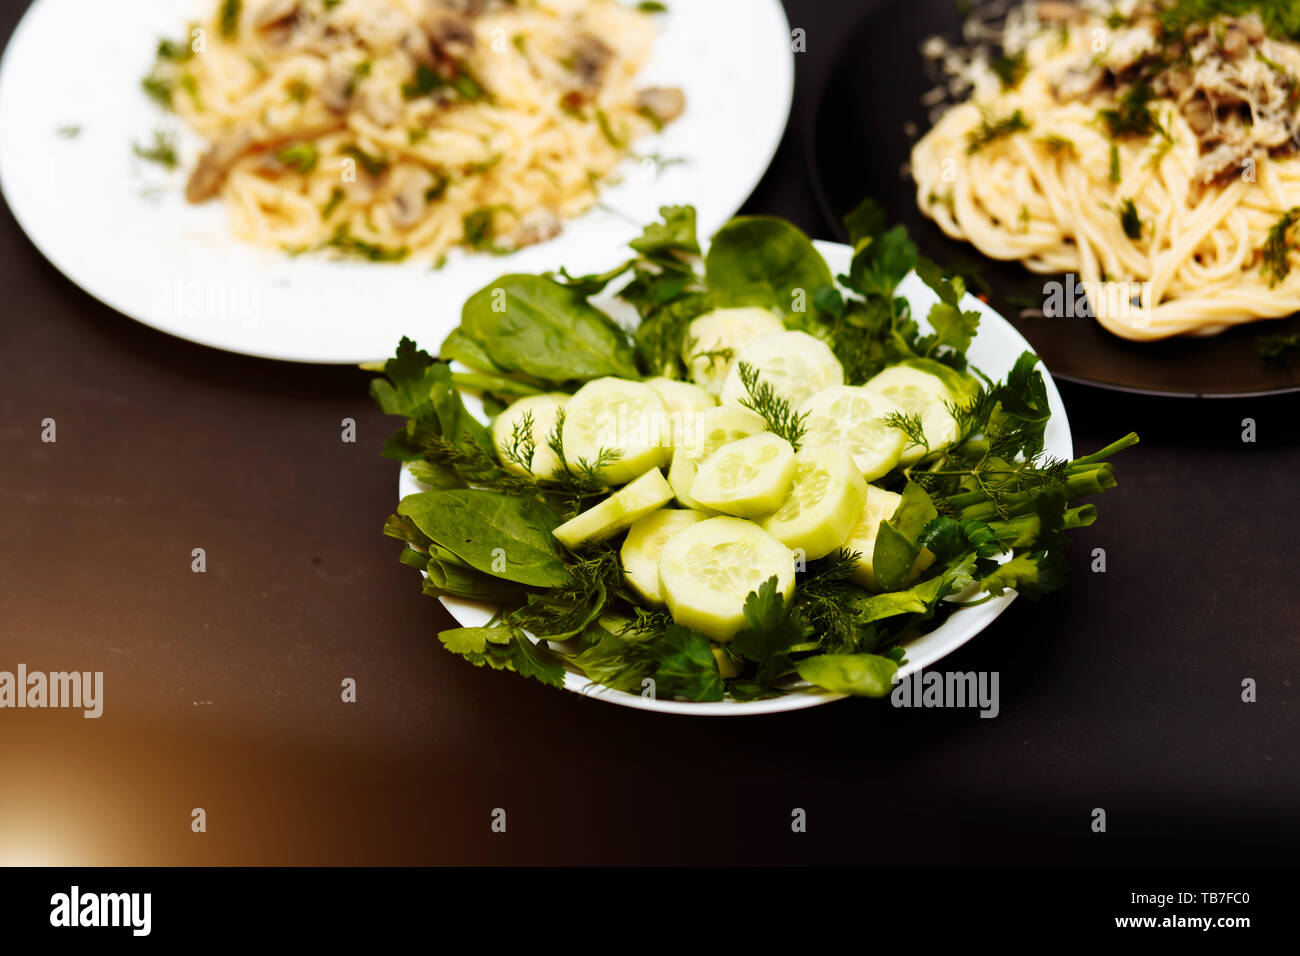 Wok Thai Food Cafe High Resolution Stock Photography And Images Alamy